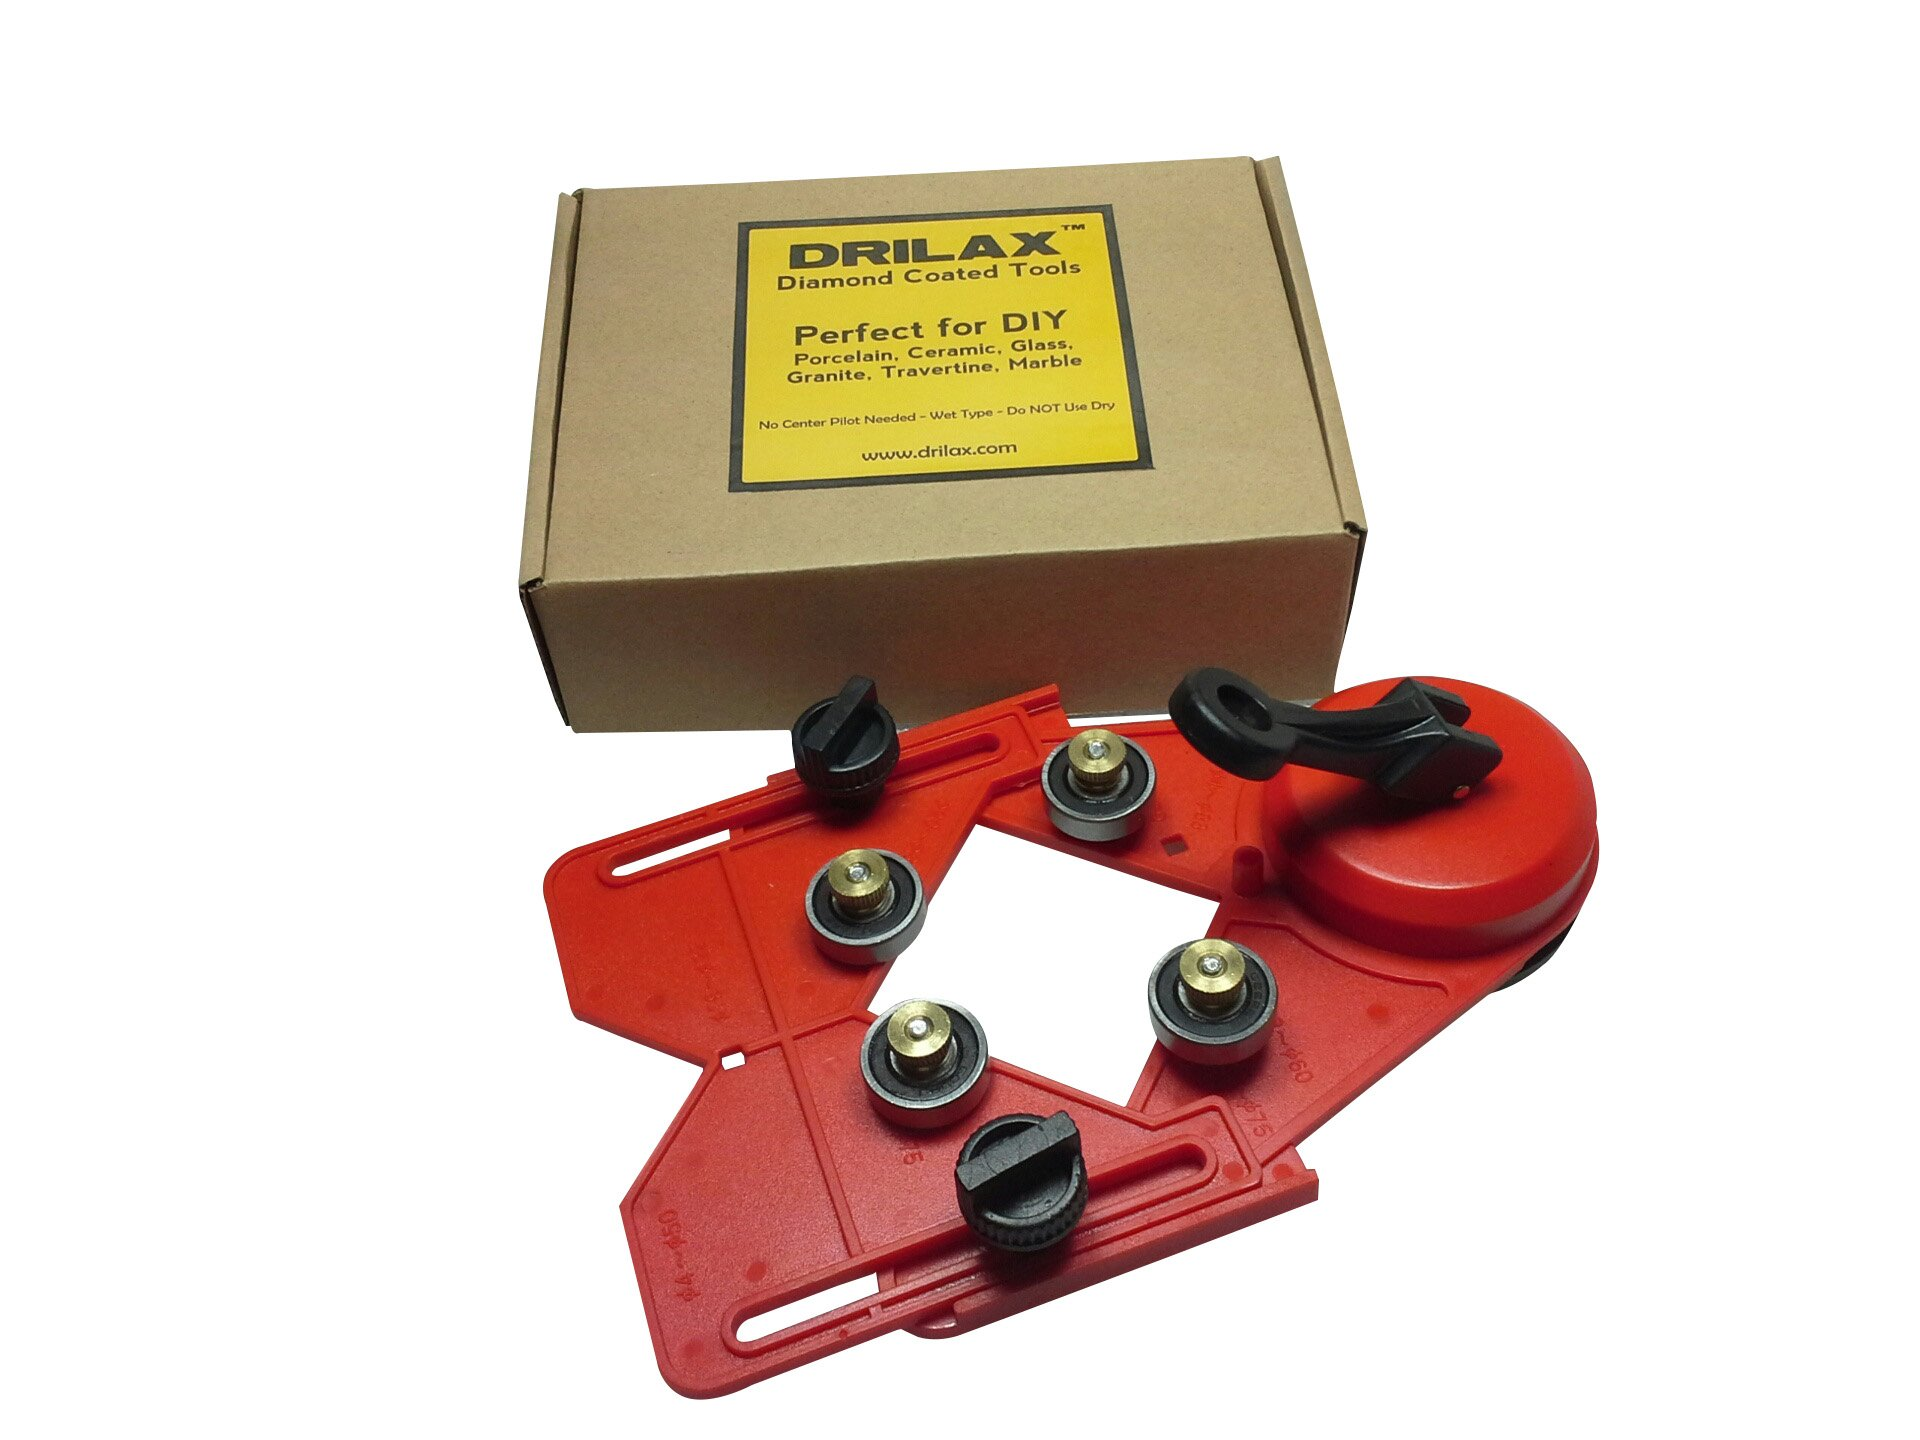 DRILAX Drill Bit Hole Saw Guide Jig Fixture Vacuum Suction Base with Water Coolant Hole